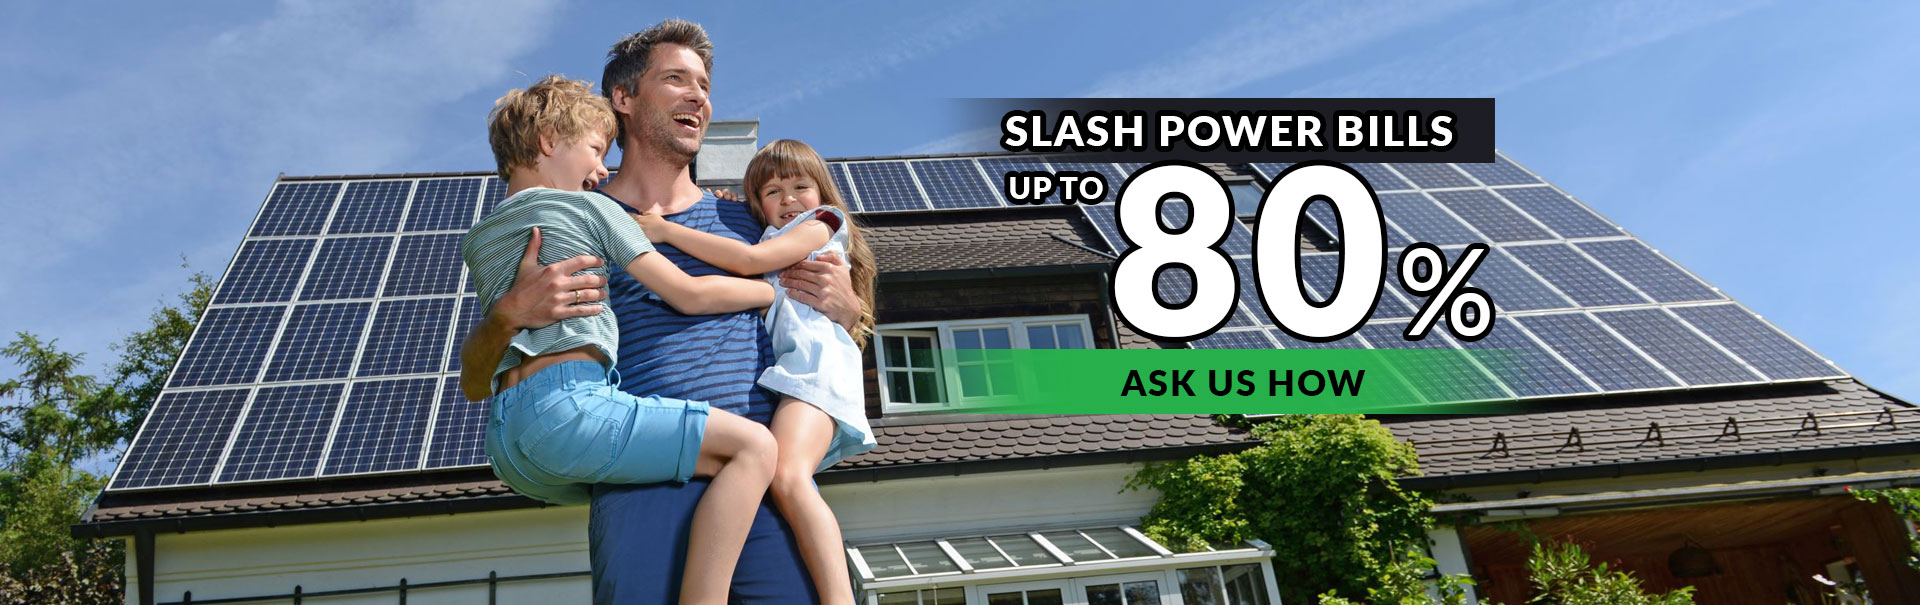 80% off power bills